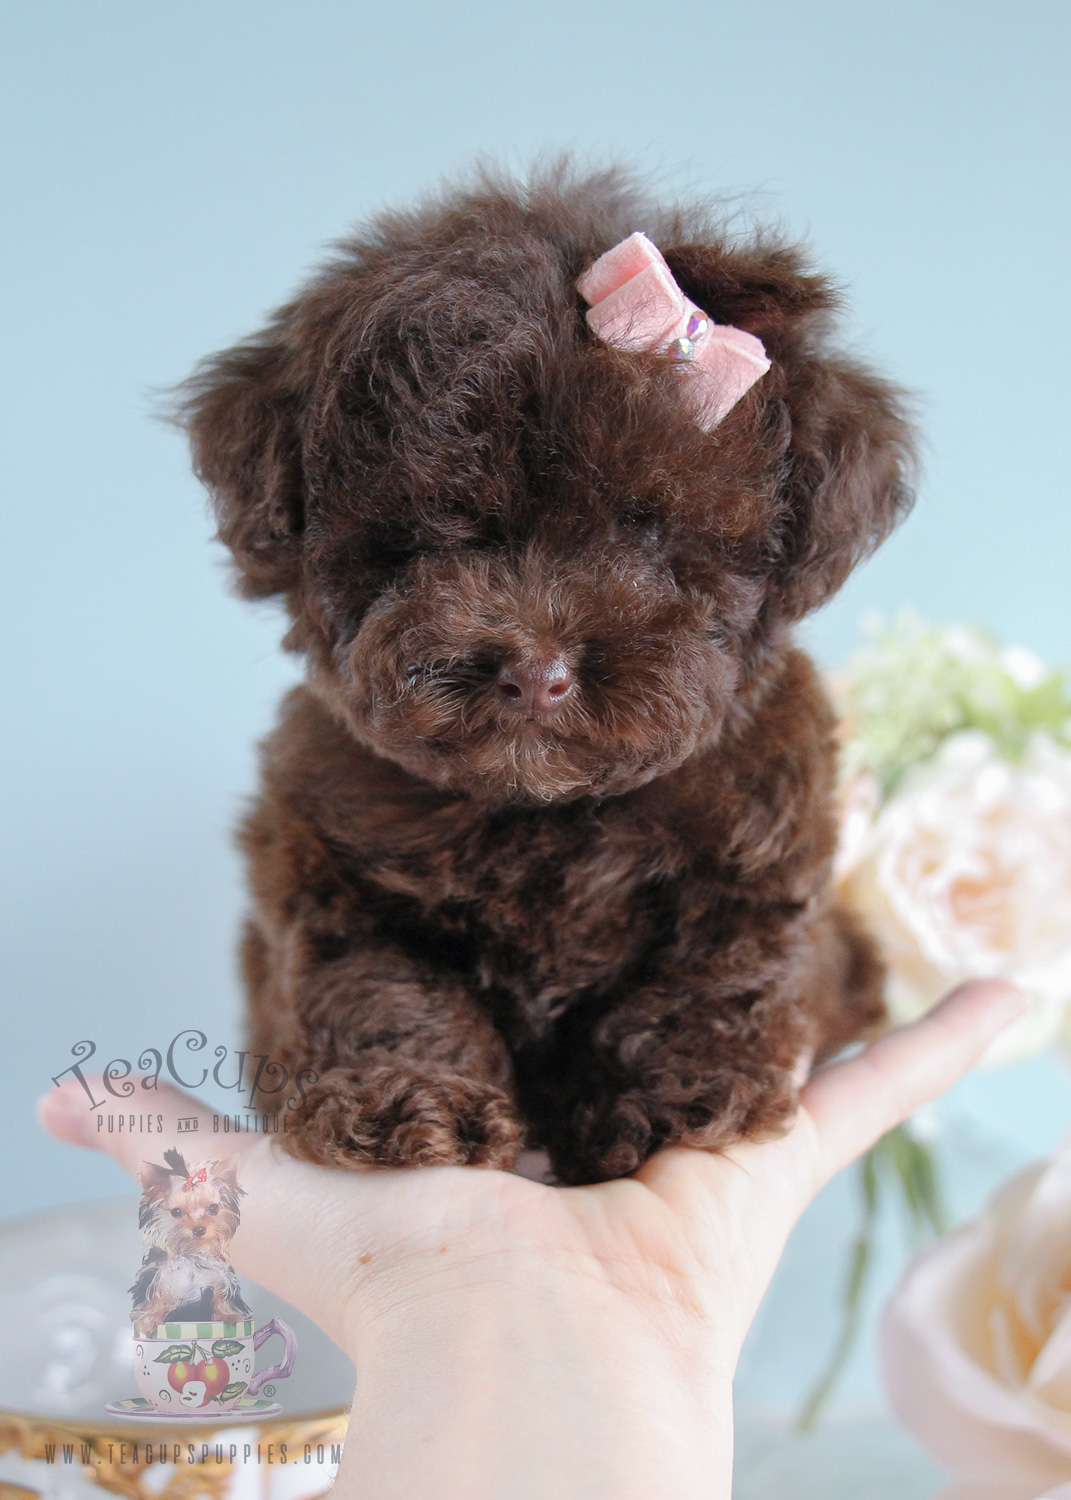 Tiny Toy Poodle Puppies For Sale | Teacups, Puppies & Boutique